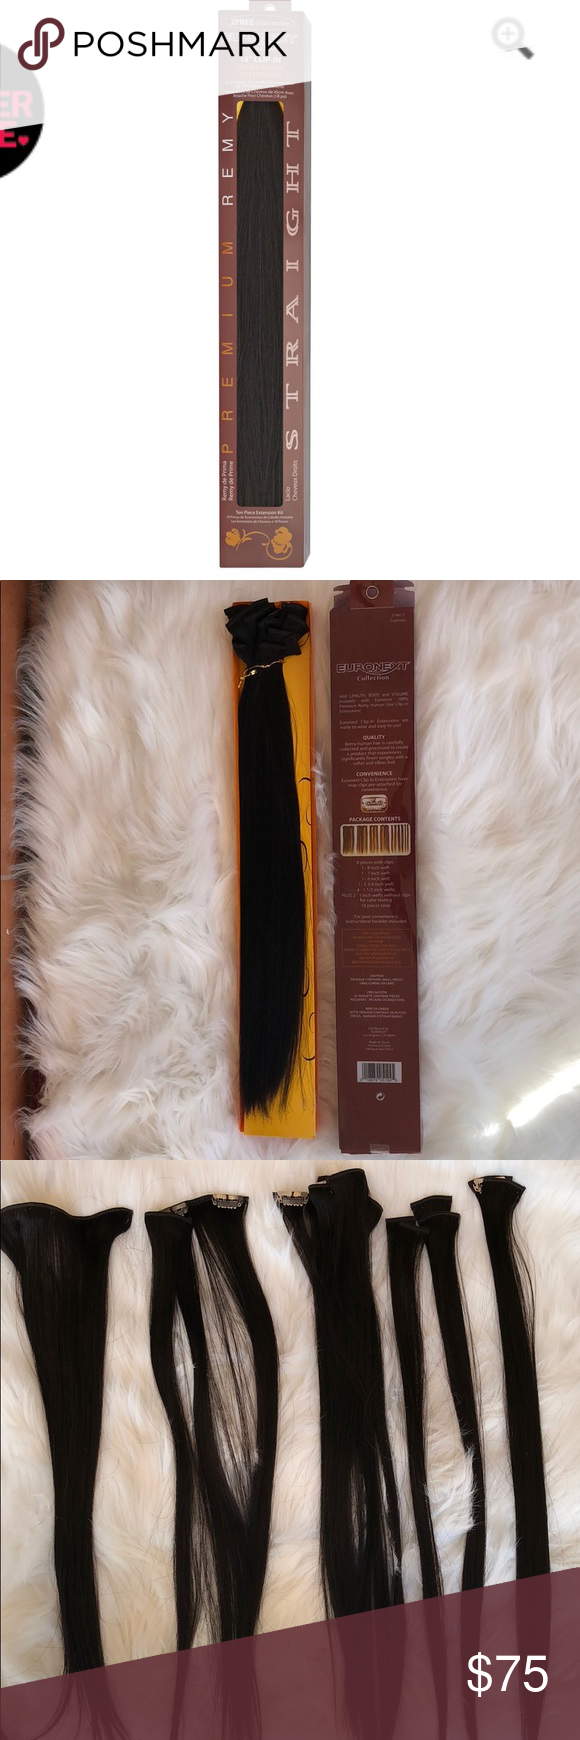 Sally Beauty Euronext Human Hair Extensions Sally Beauty Euronext